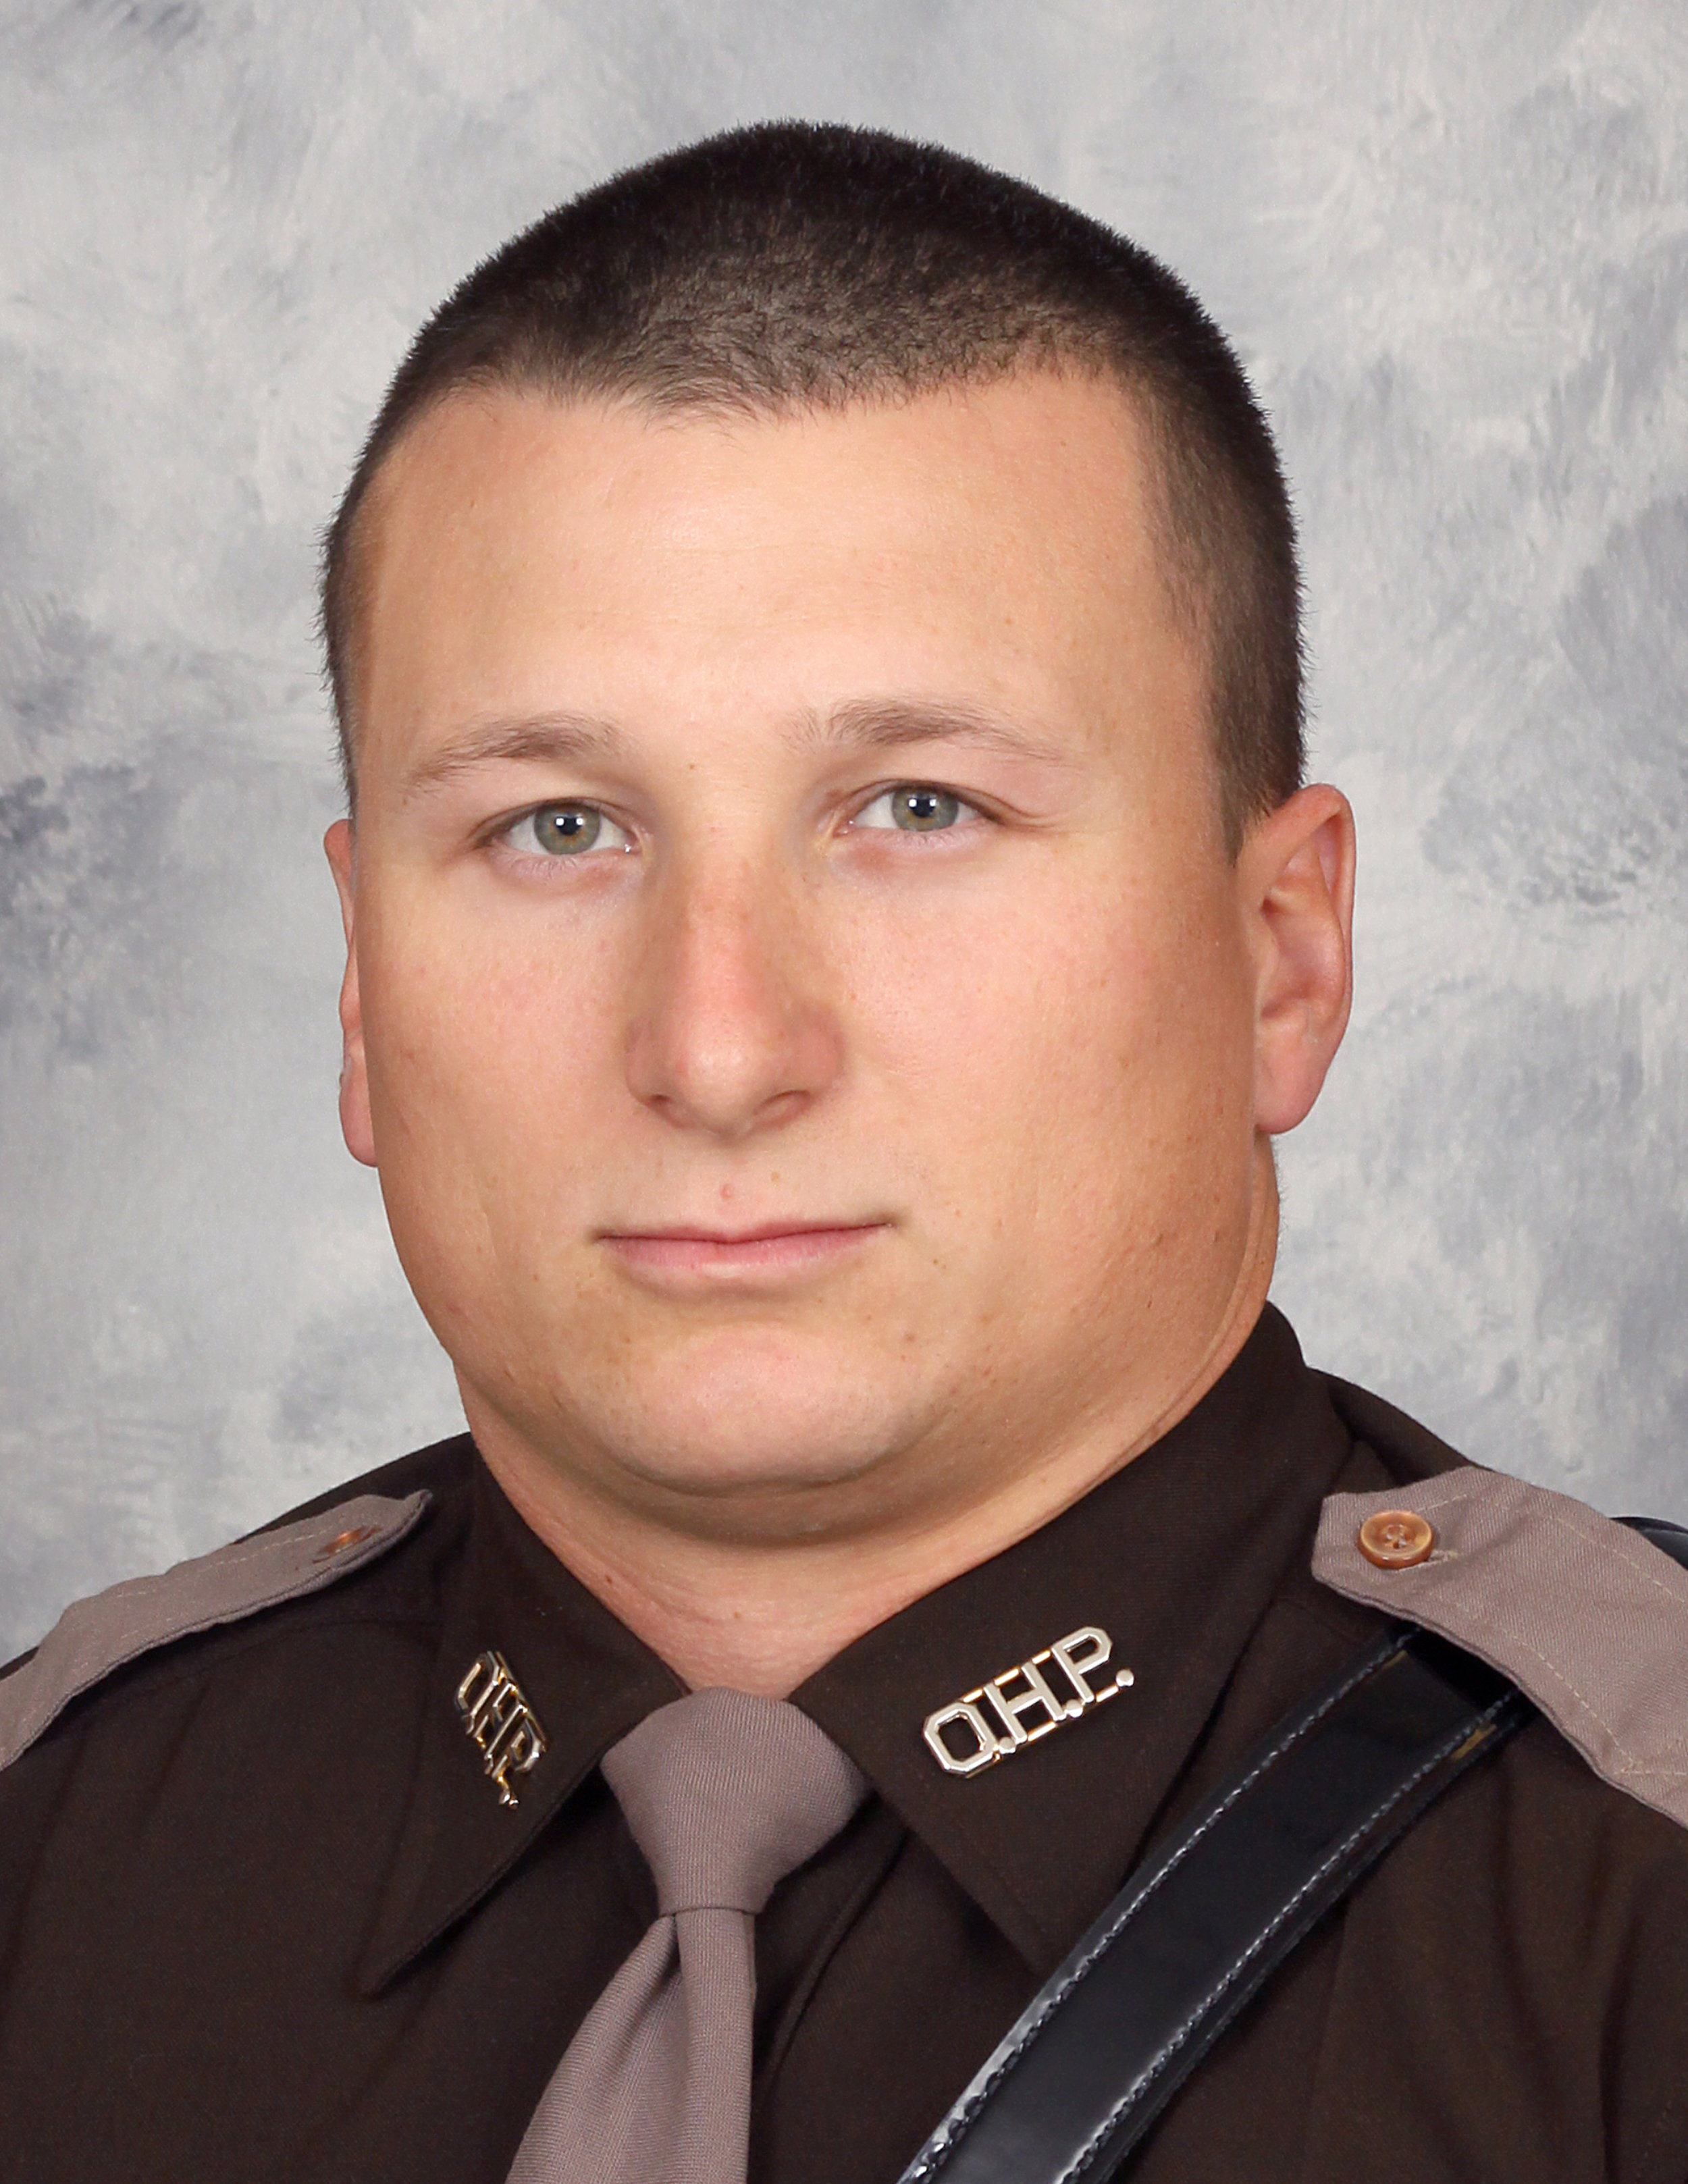 Trooper Nicholas Dees   January 21, 2015   Trooper Nicholas Dees joined the OHP in 2013. On January 31, 2015, Trooper Nicholas Dees and Trooper Keith Burch had been dispatched to investigate a collision involving a tractor-trailer on Interstate 40 in Seminole County near the Pottowatomie County line. While both Troopers were standing outside their patrol units investigating the collision, a driver failed to yield to their warning lights, traveled into the collision scene and struck both Troopers. Trooper Dees died instantly. Trooper Burch received serious injuries. The driver of the vehicle was charged with manslaughter.